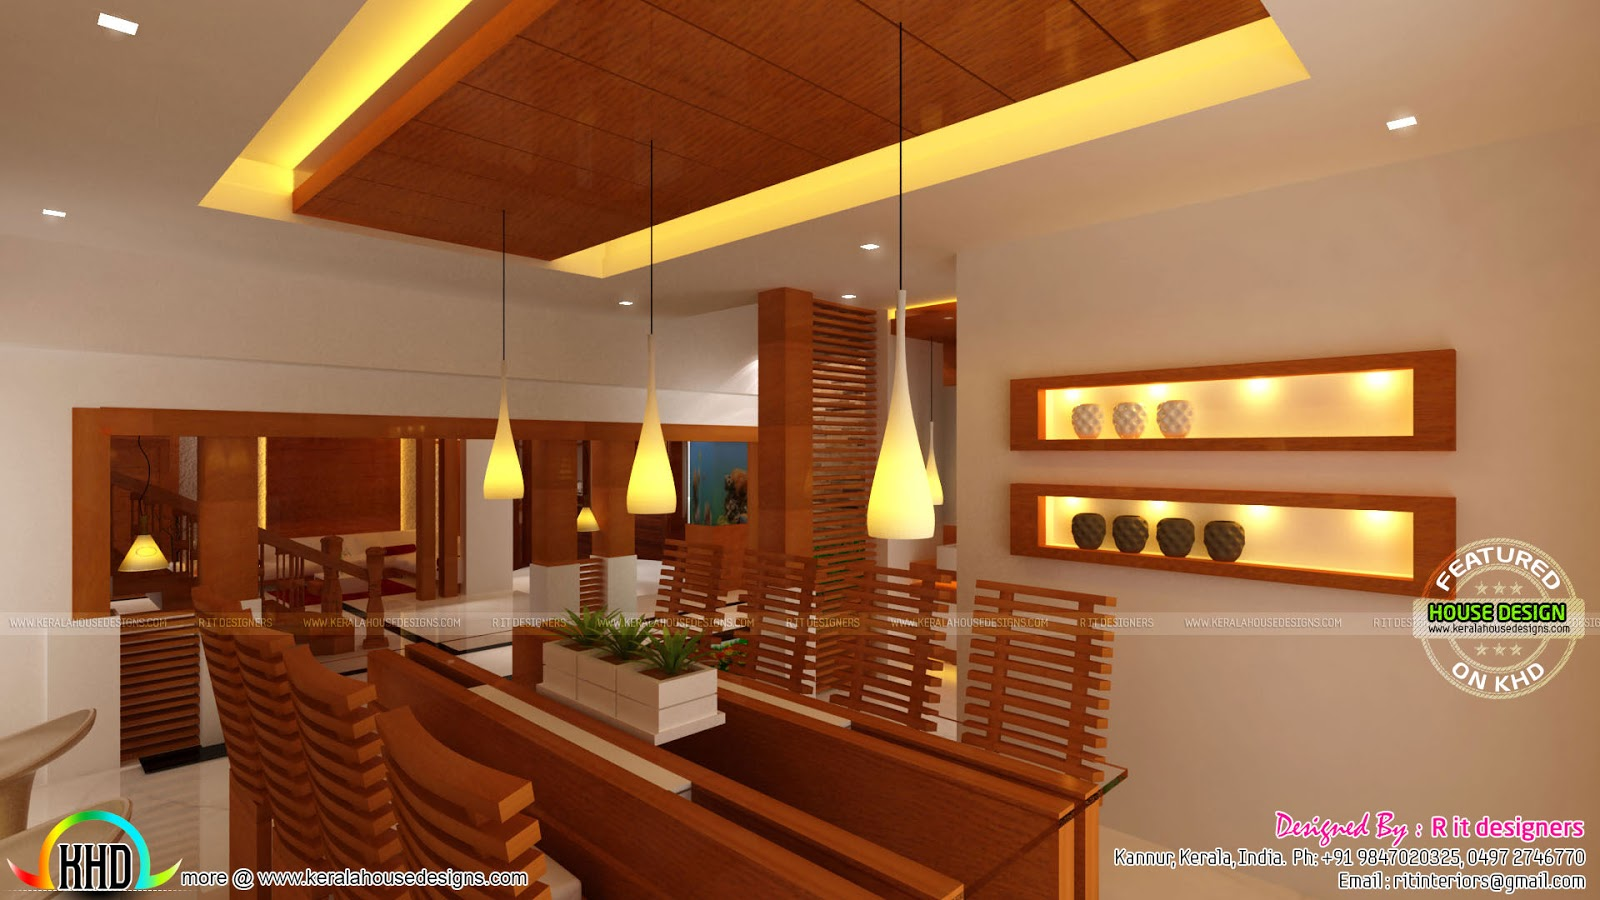 Wooden finish interior designs kerala home design and for Kerala home interior designs photos